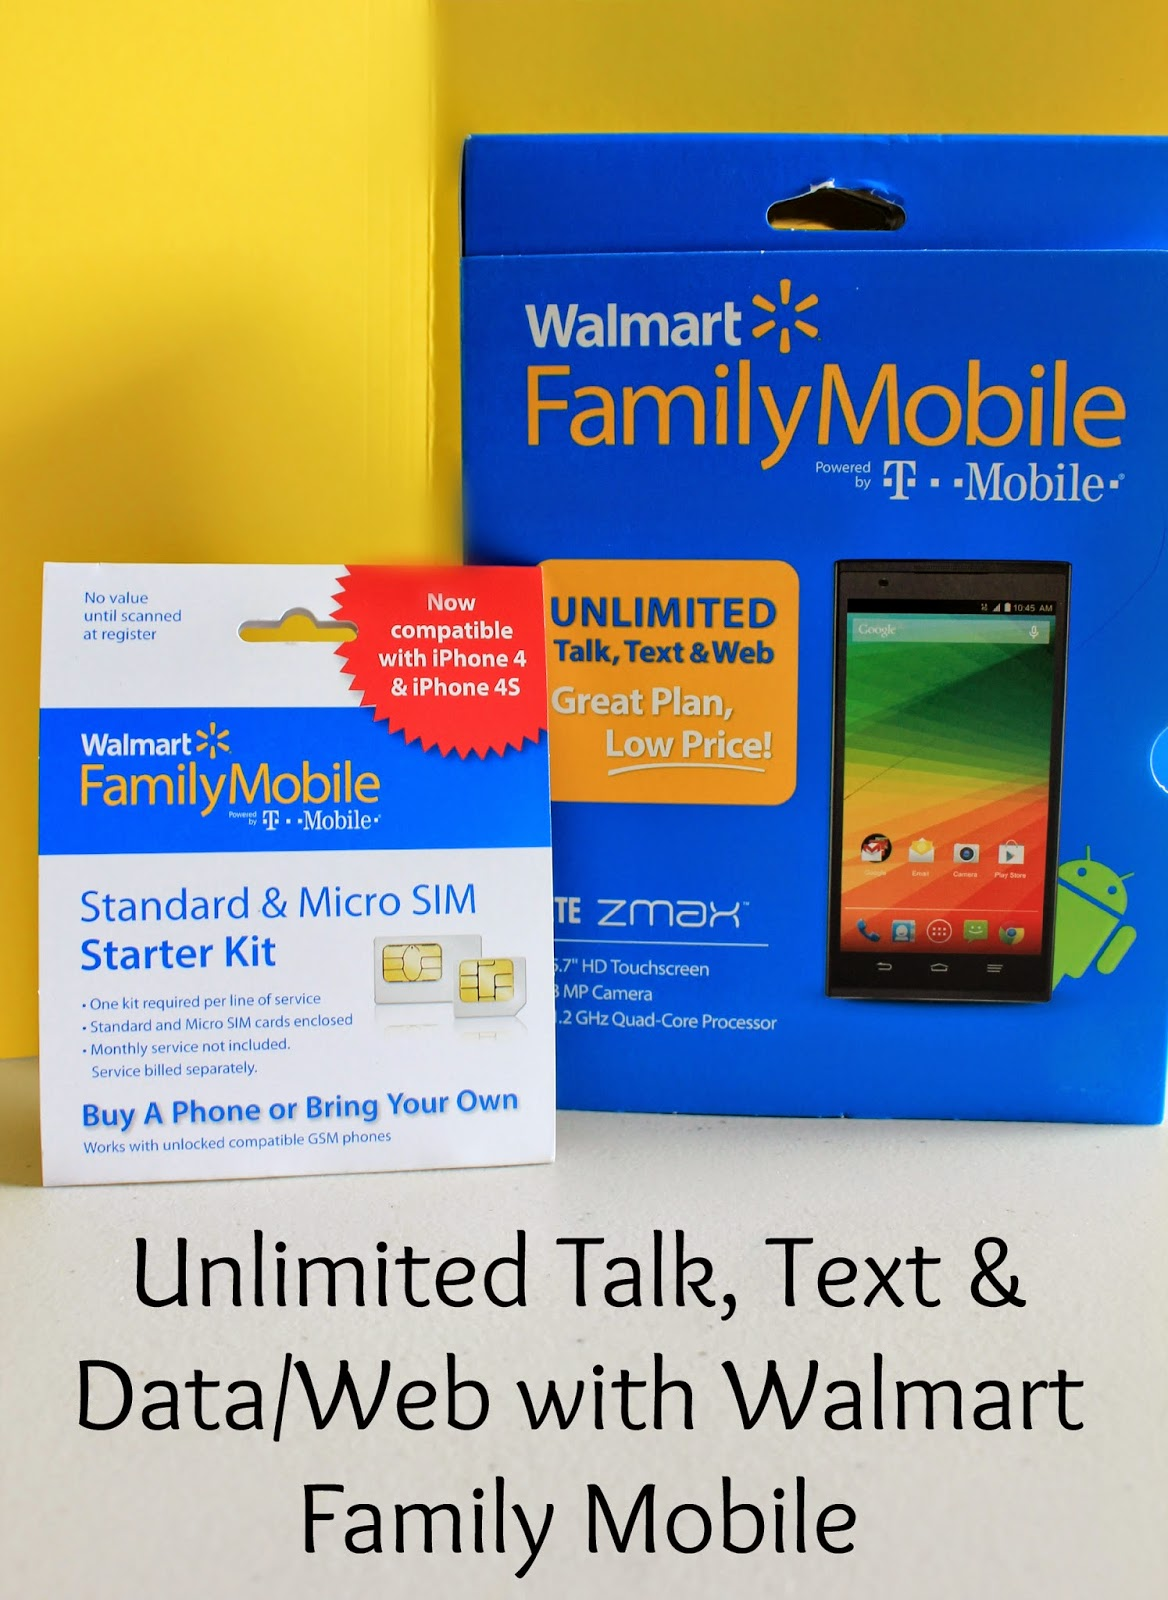 Unlimited Talk Text and Data/Web with Walmart Family Mobile #Thankful4Savings #ad